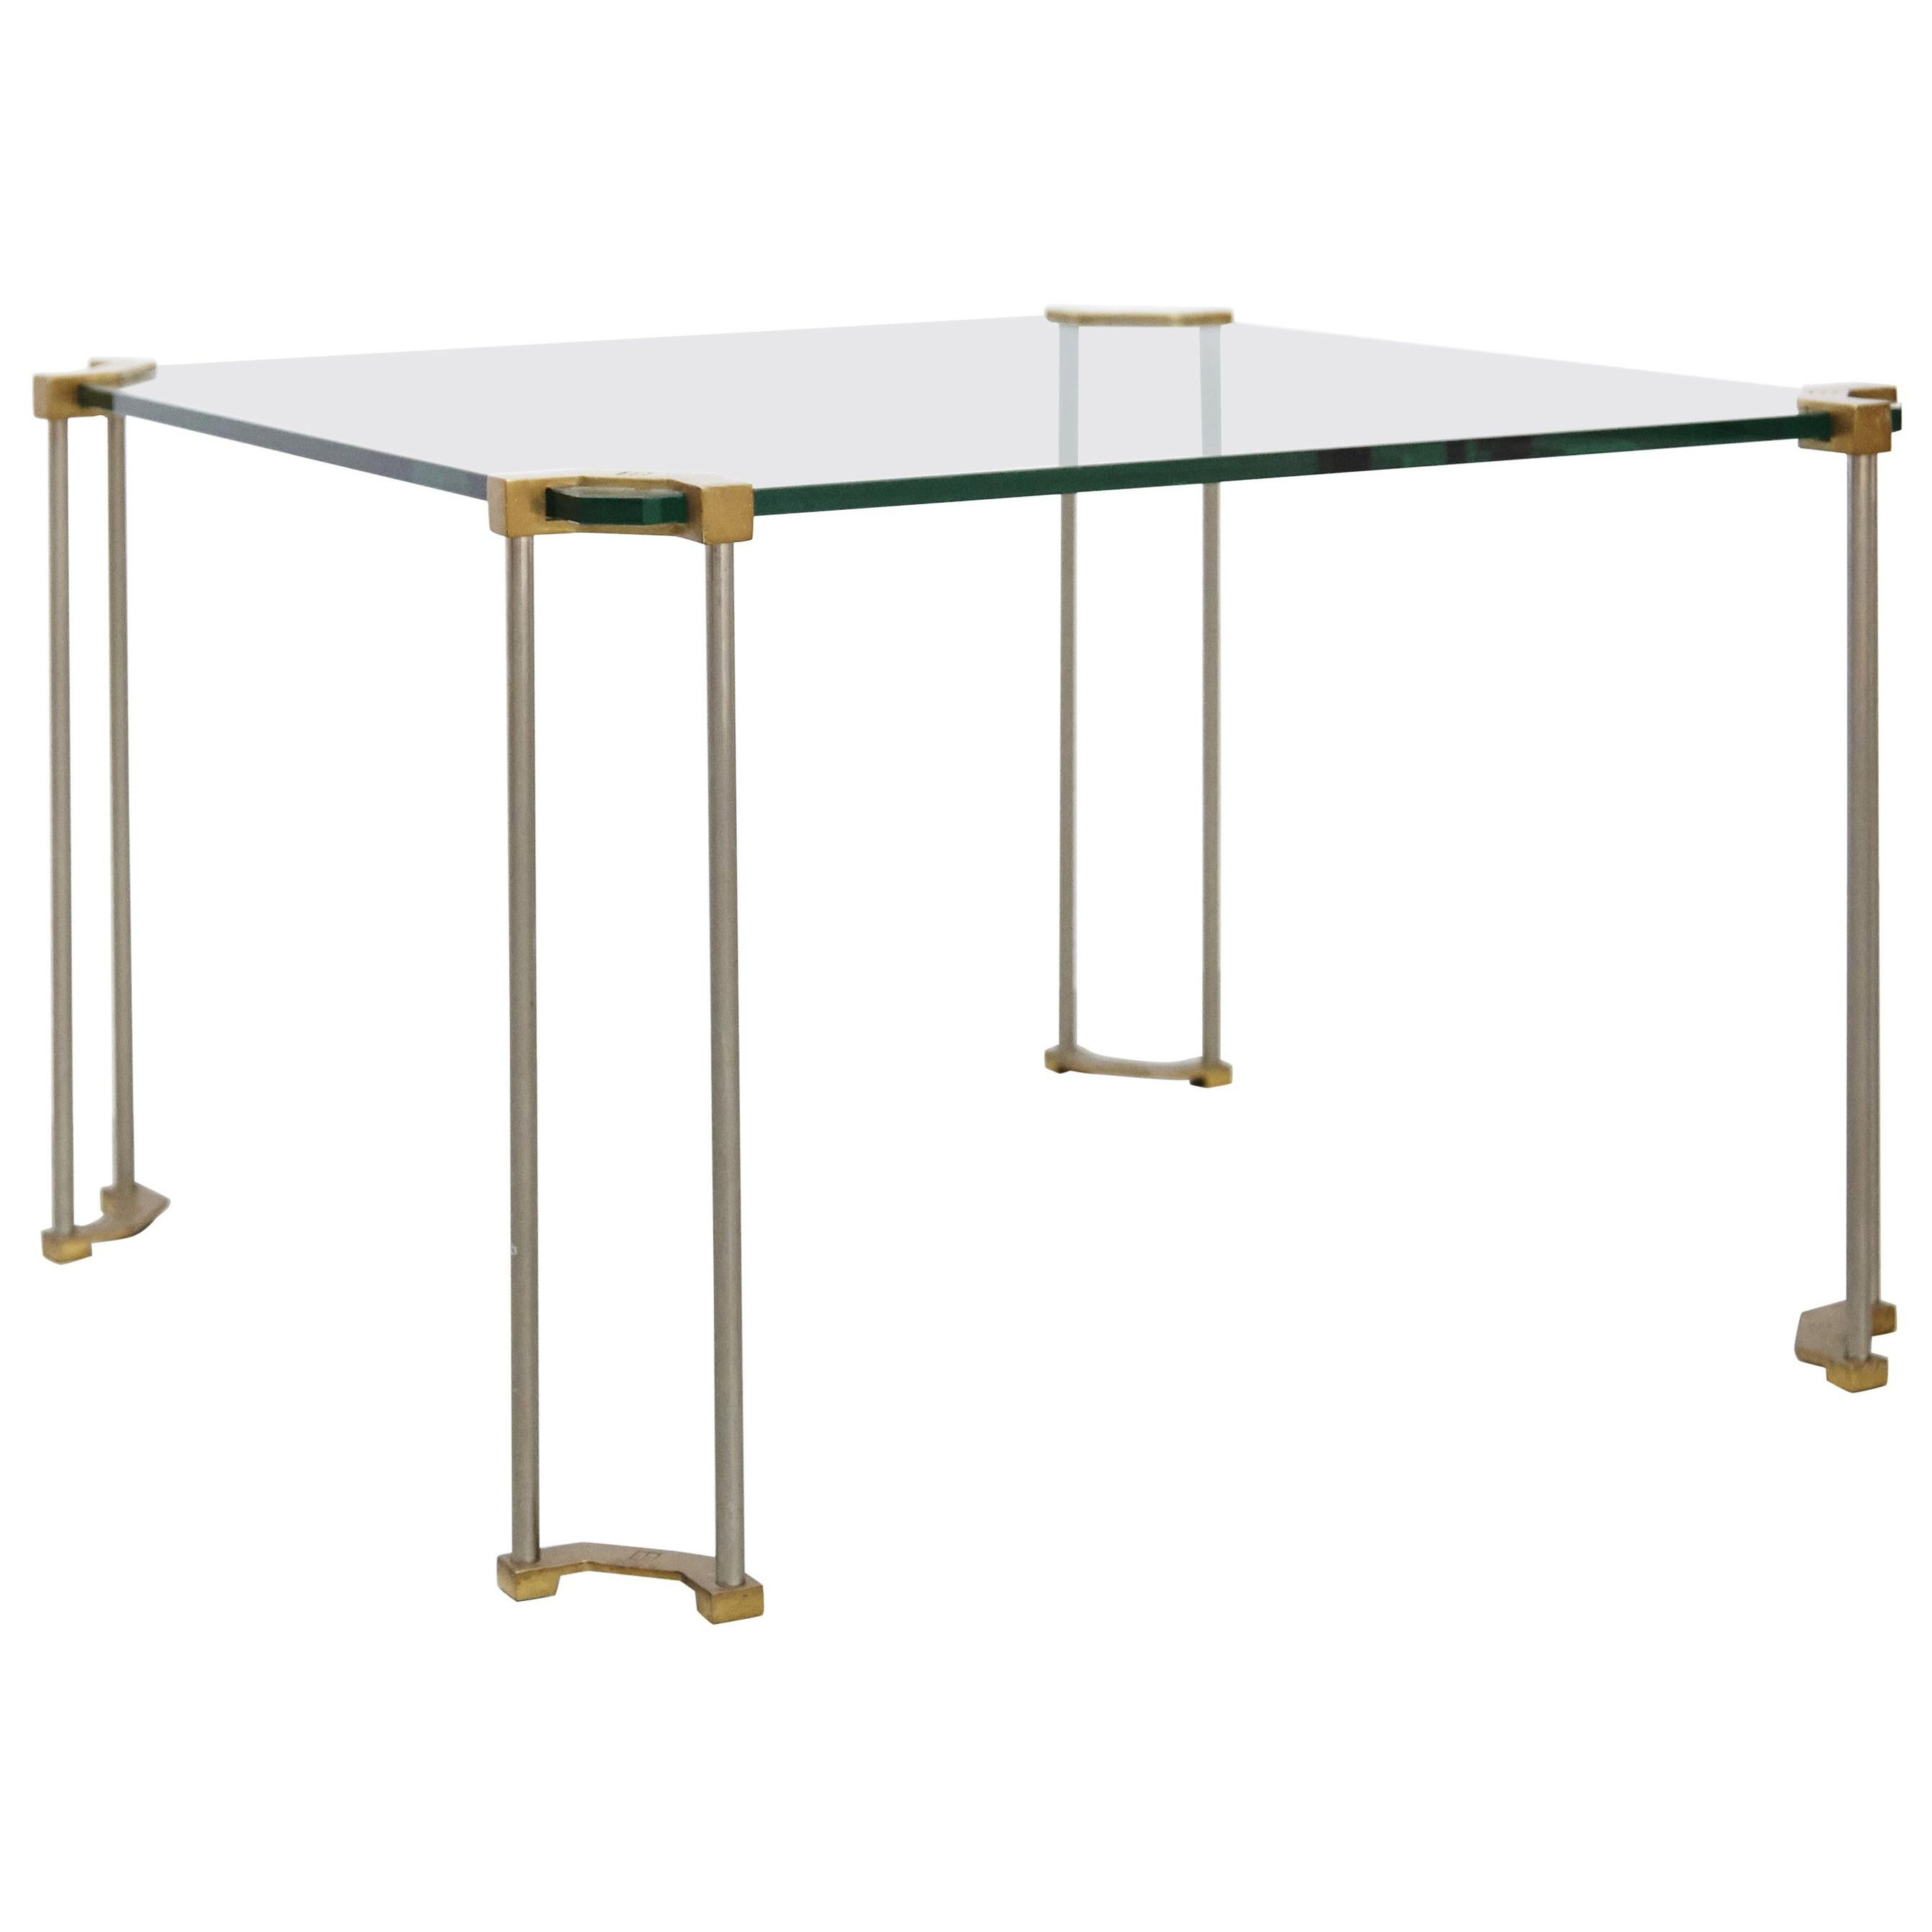 Peter Ghyczy Glass Low Table, circa 1970